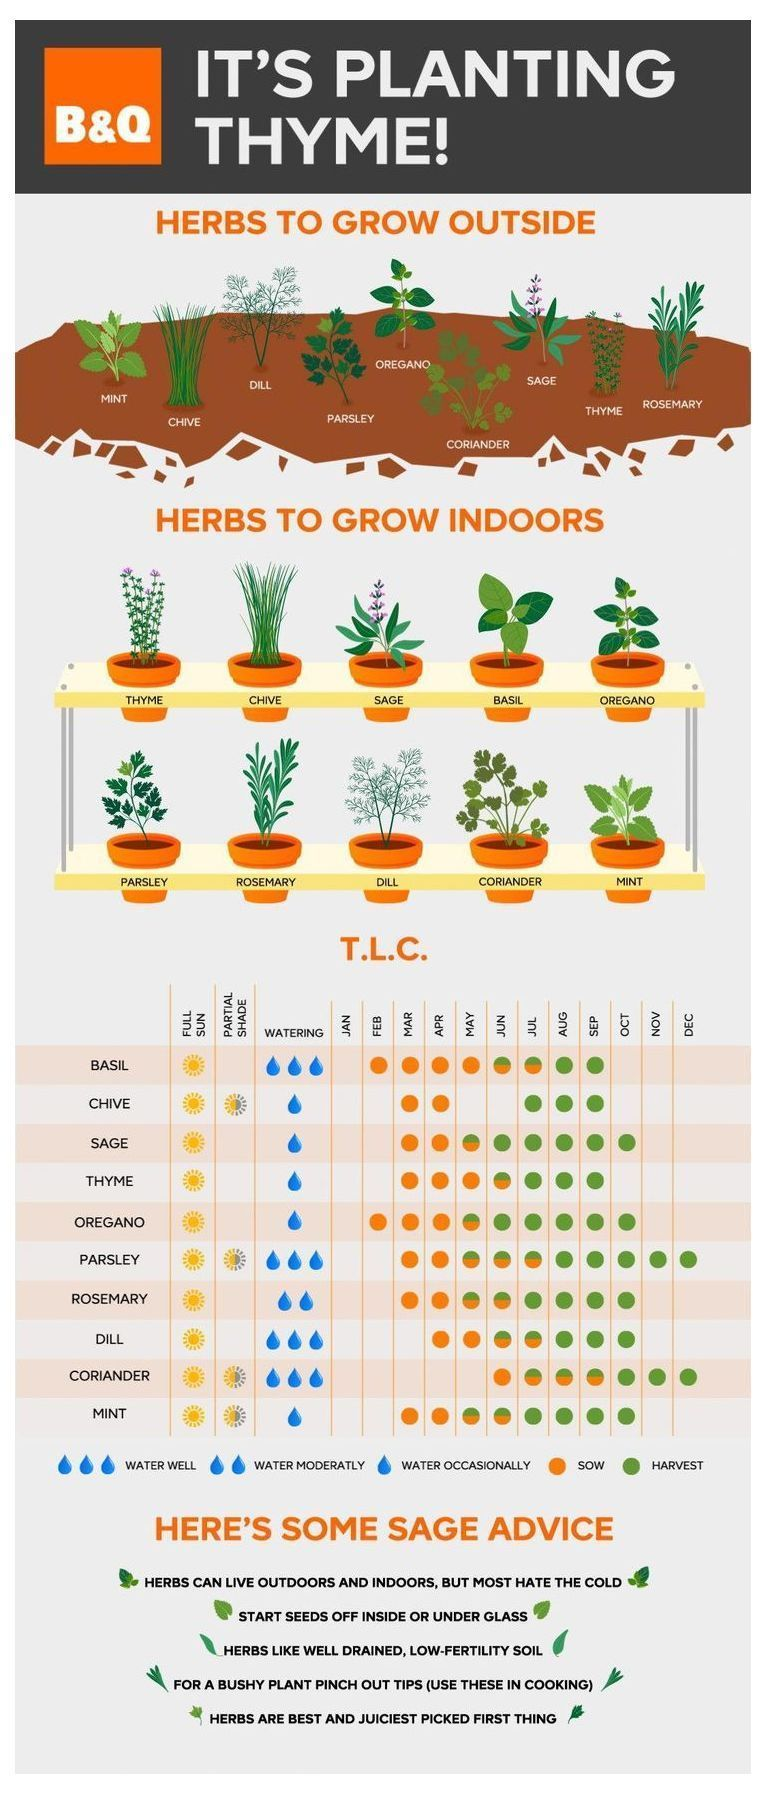 Herbs Create A Garden To Remember With This Useful Advice. | Herb Garden Indoor | Vert... -  Create A Garden To Remember With This Useful Advice. | Herb Garden Indoor | Vertical Herb Gardens | Herb Planter Ideas | Companion Planting Herbs In Pots. #growyourownfood #nochemicals #vegetablegardening